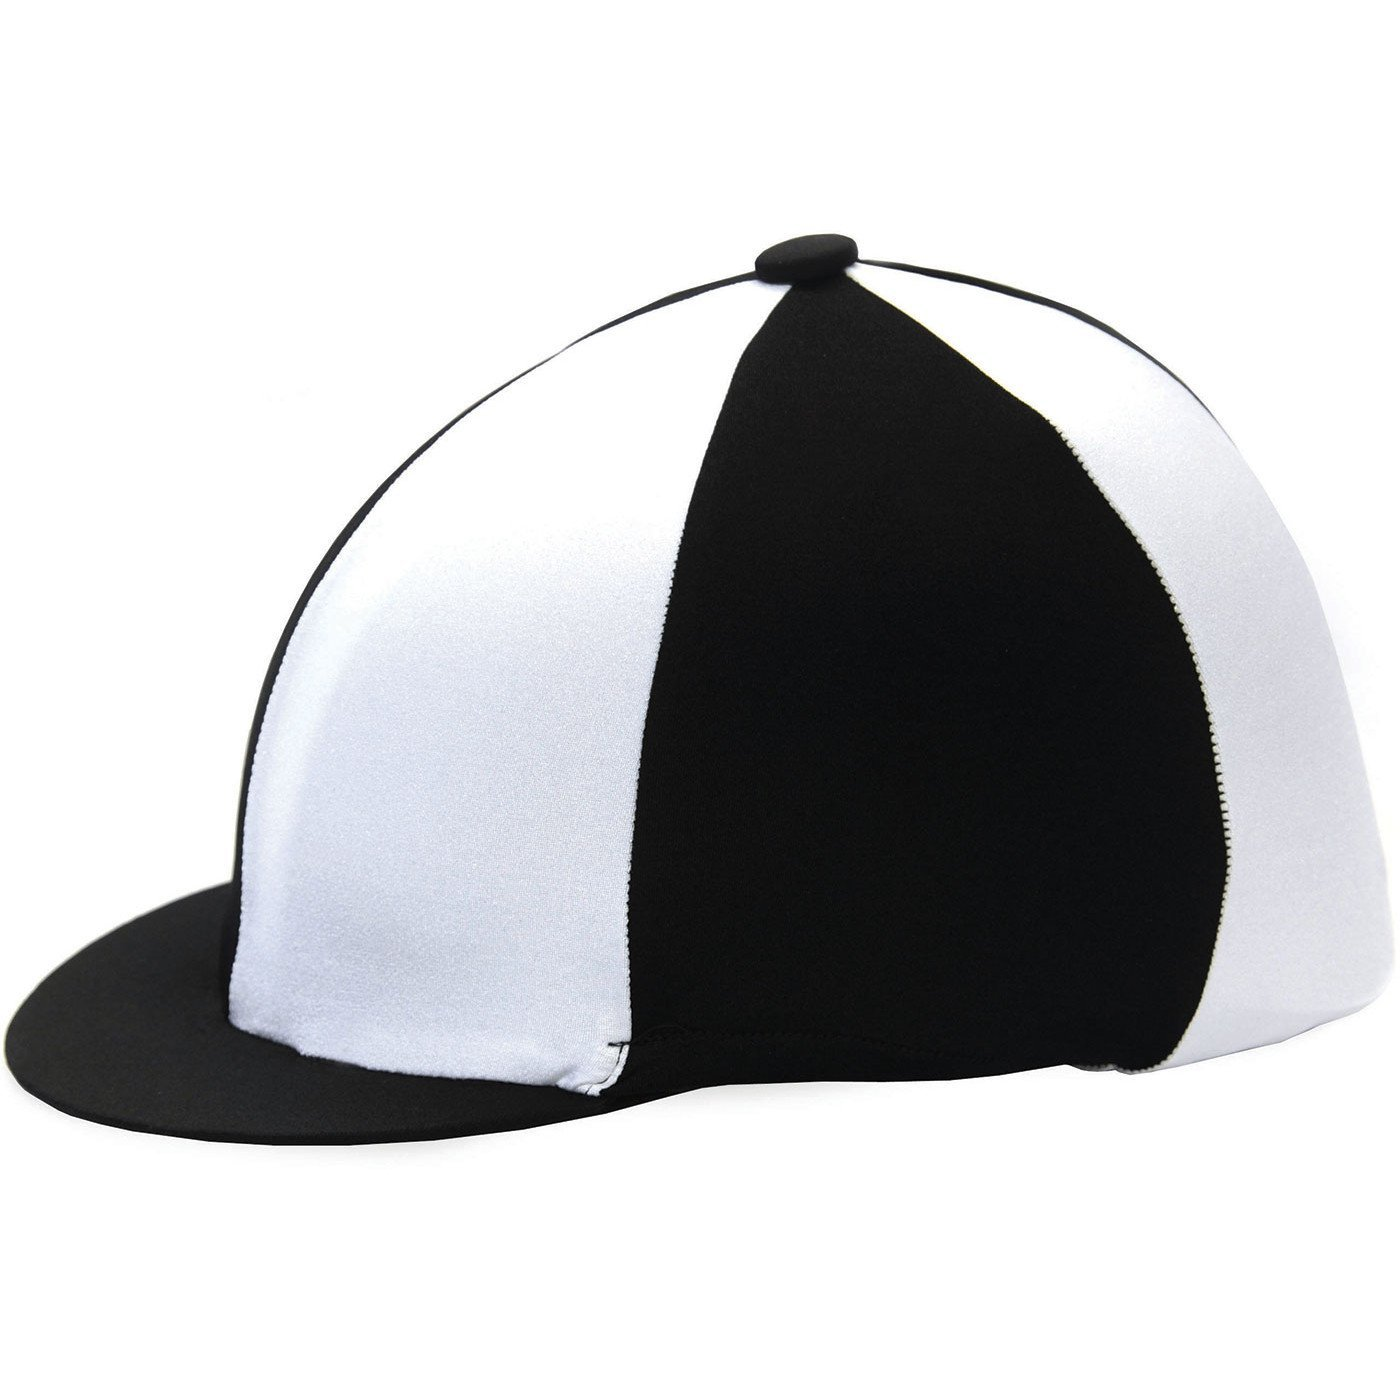 161624b2866736 Get Quotations · HY Two Tone Black and White Lycra Riding Hat Silk